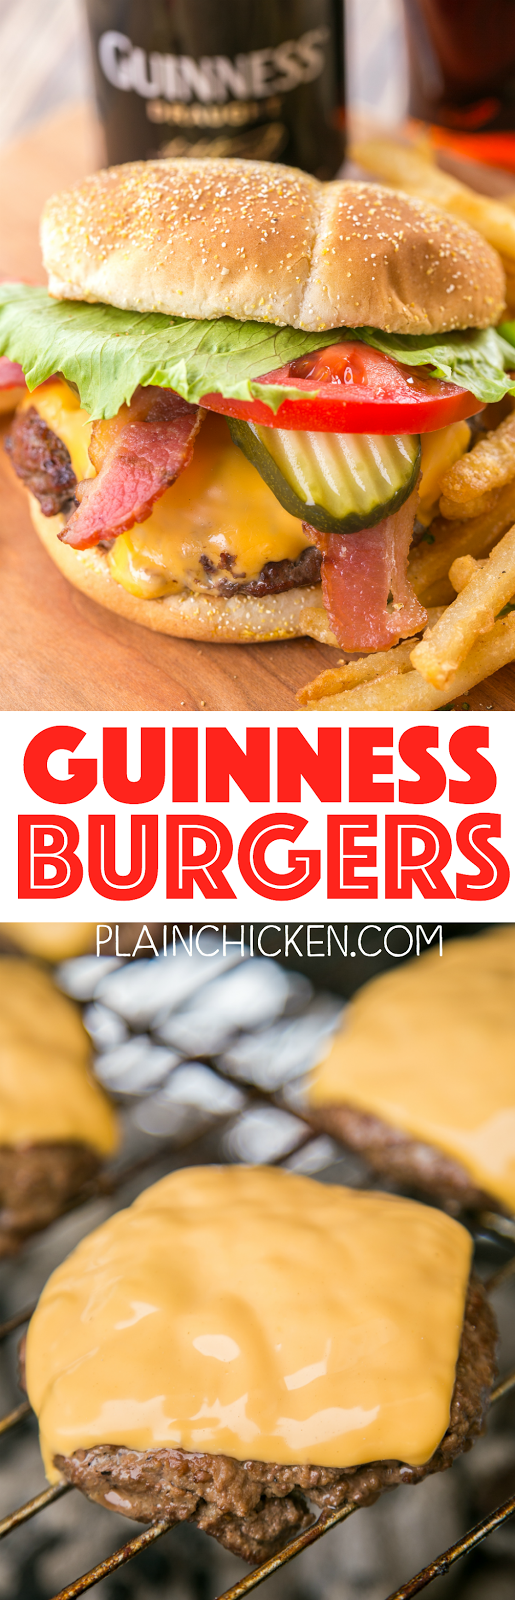 Guinness Burgers - simply THE BEST! Can make ahead of time and freezer for later. Hamburger, Guinness beer, Worcestershire sauce, mustard,onion, garlic, salt, pepper. I don't like beer, but these burgers were DELICIOUS!!! A new favorite!!